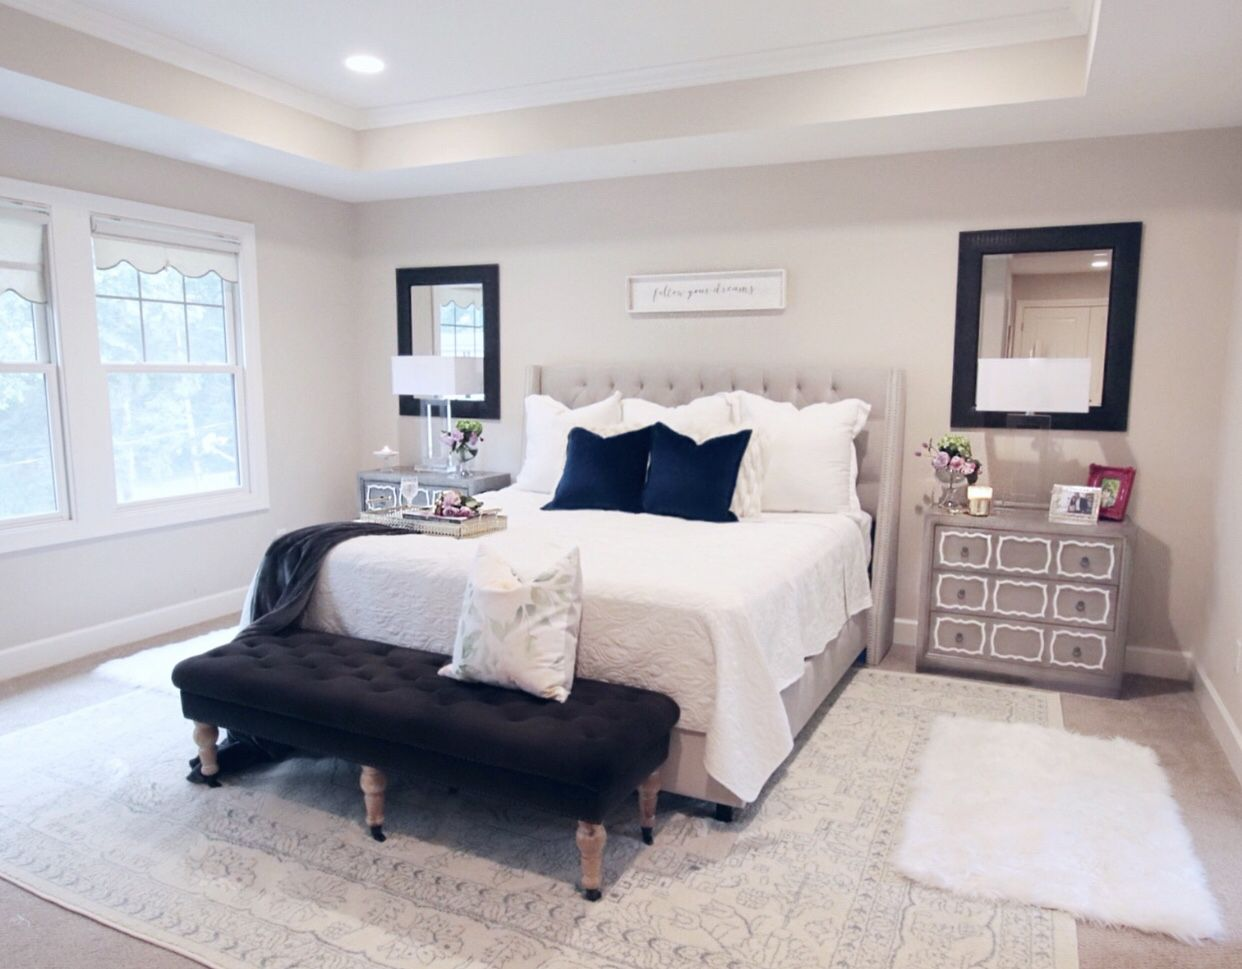 Master bedroom decor ideas images